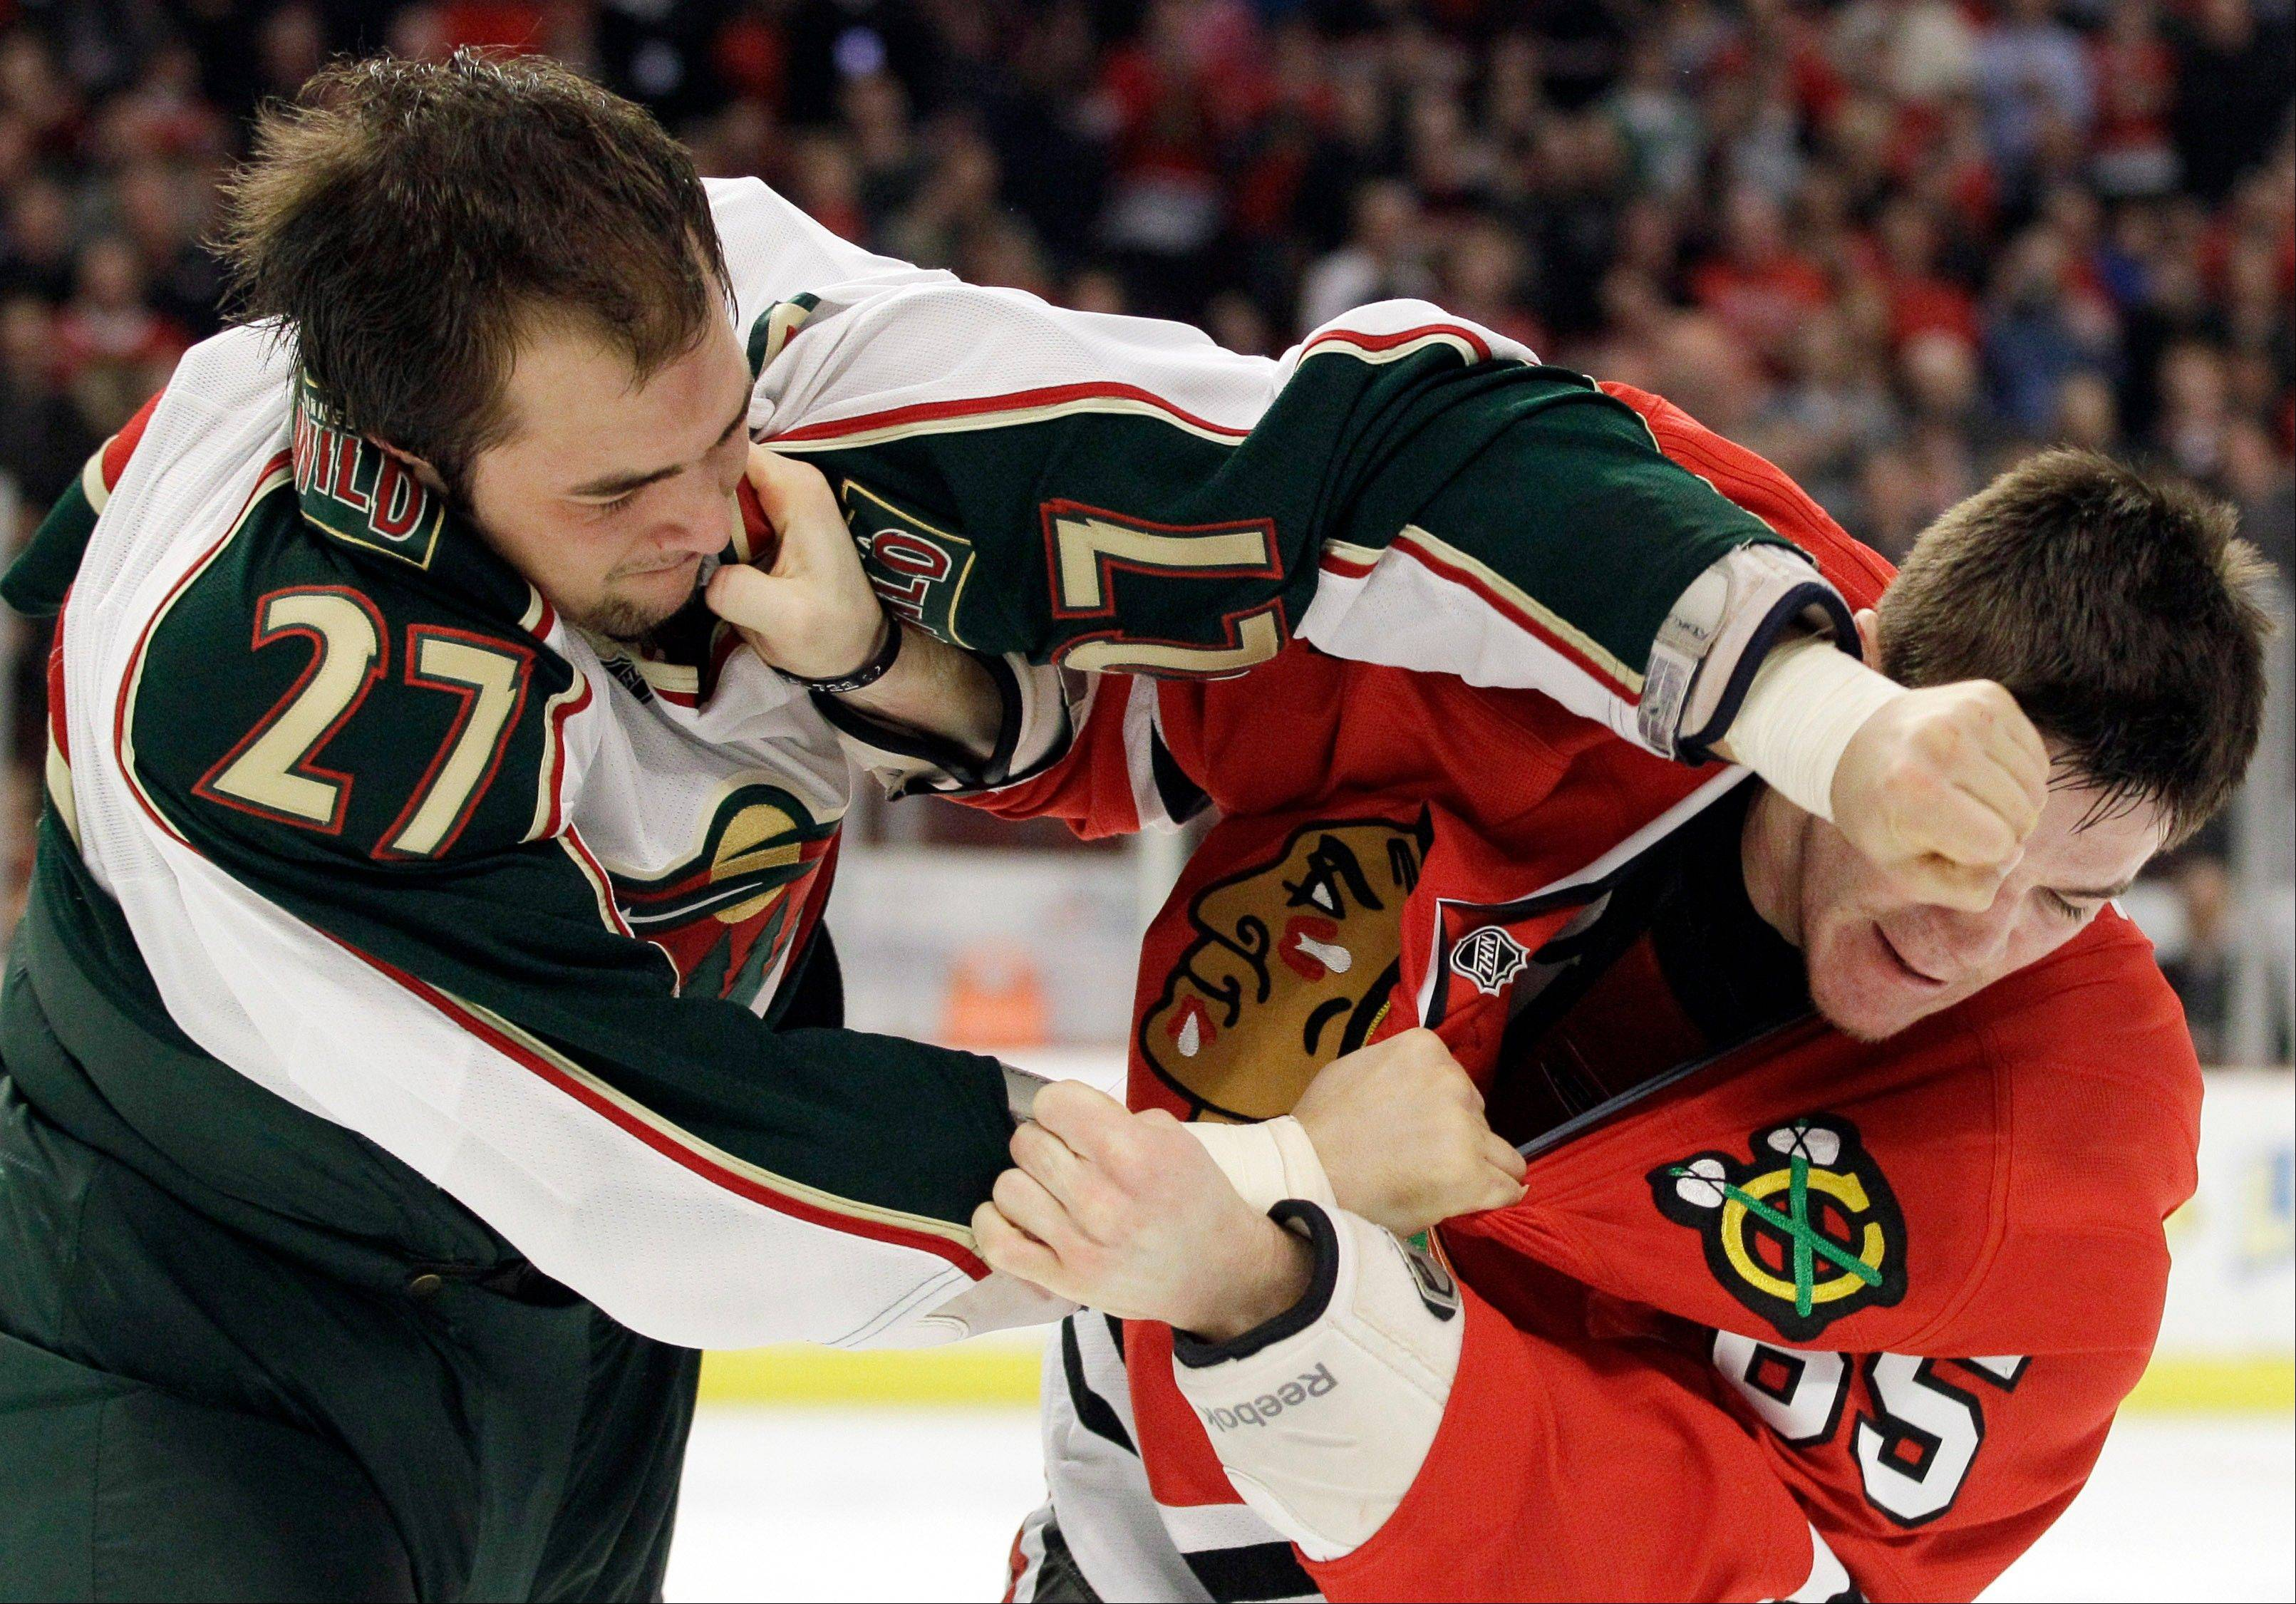 As Minnesota Wild's Corey Almond learns, Andrew Shaw of the Blackhawks doesn't back down from a confrontation.